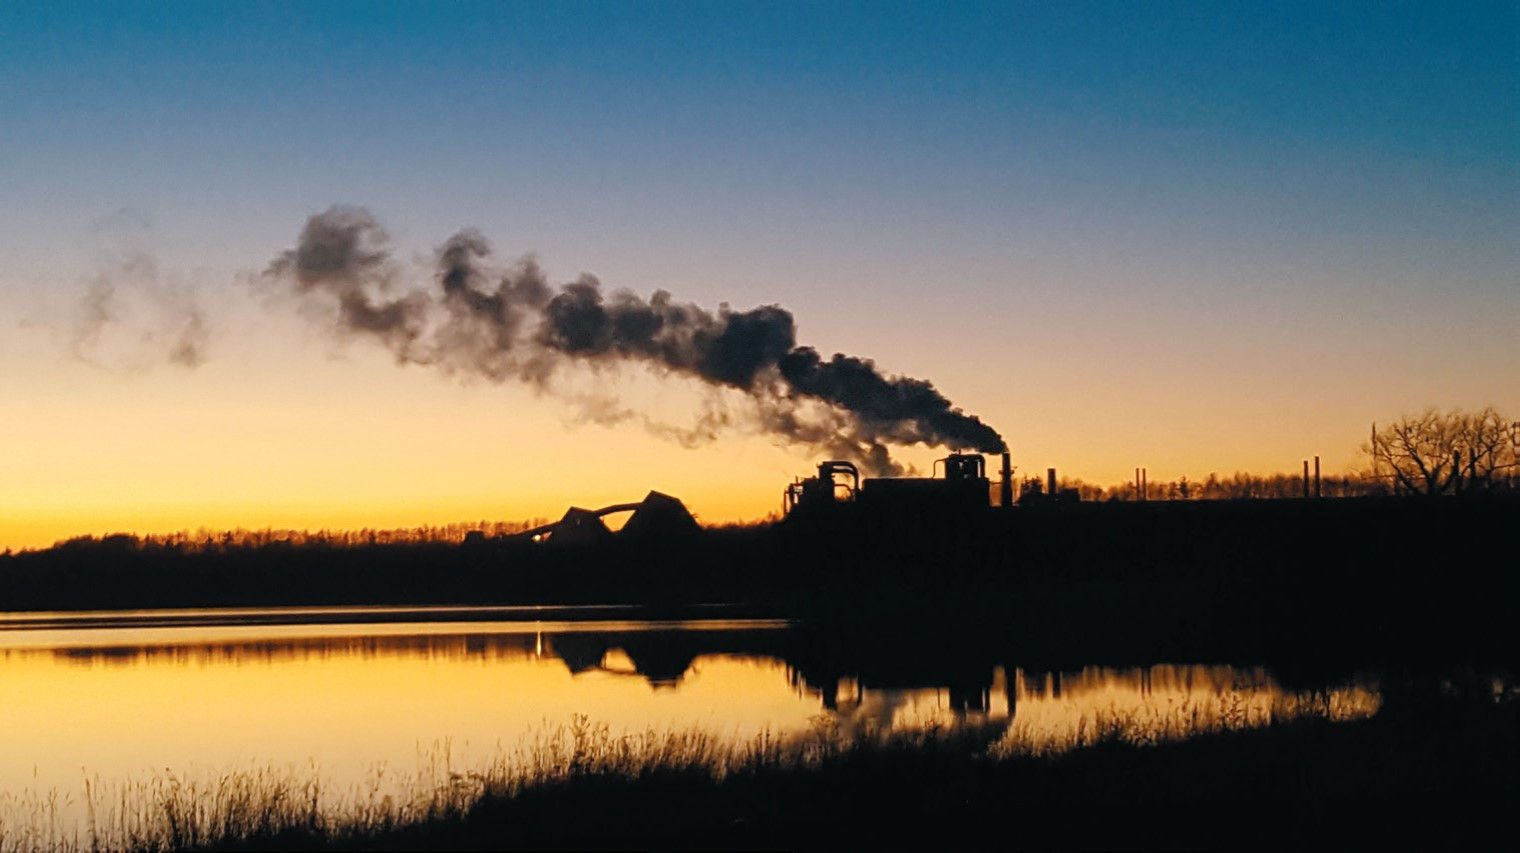 EPA warns 5 industrial sites to improve their environmental performance or face further sanction